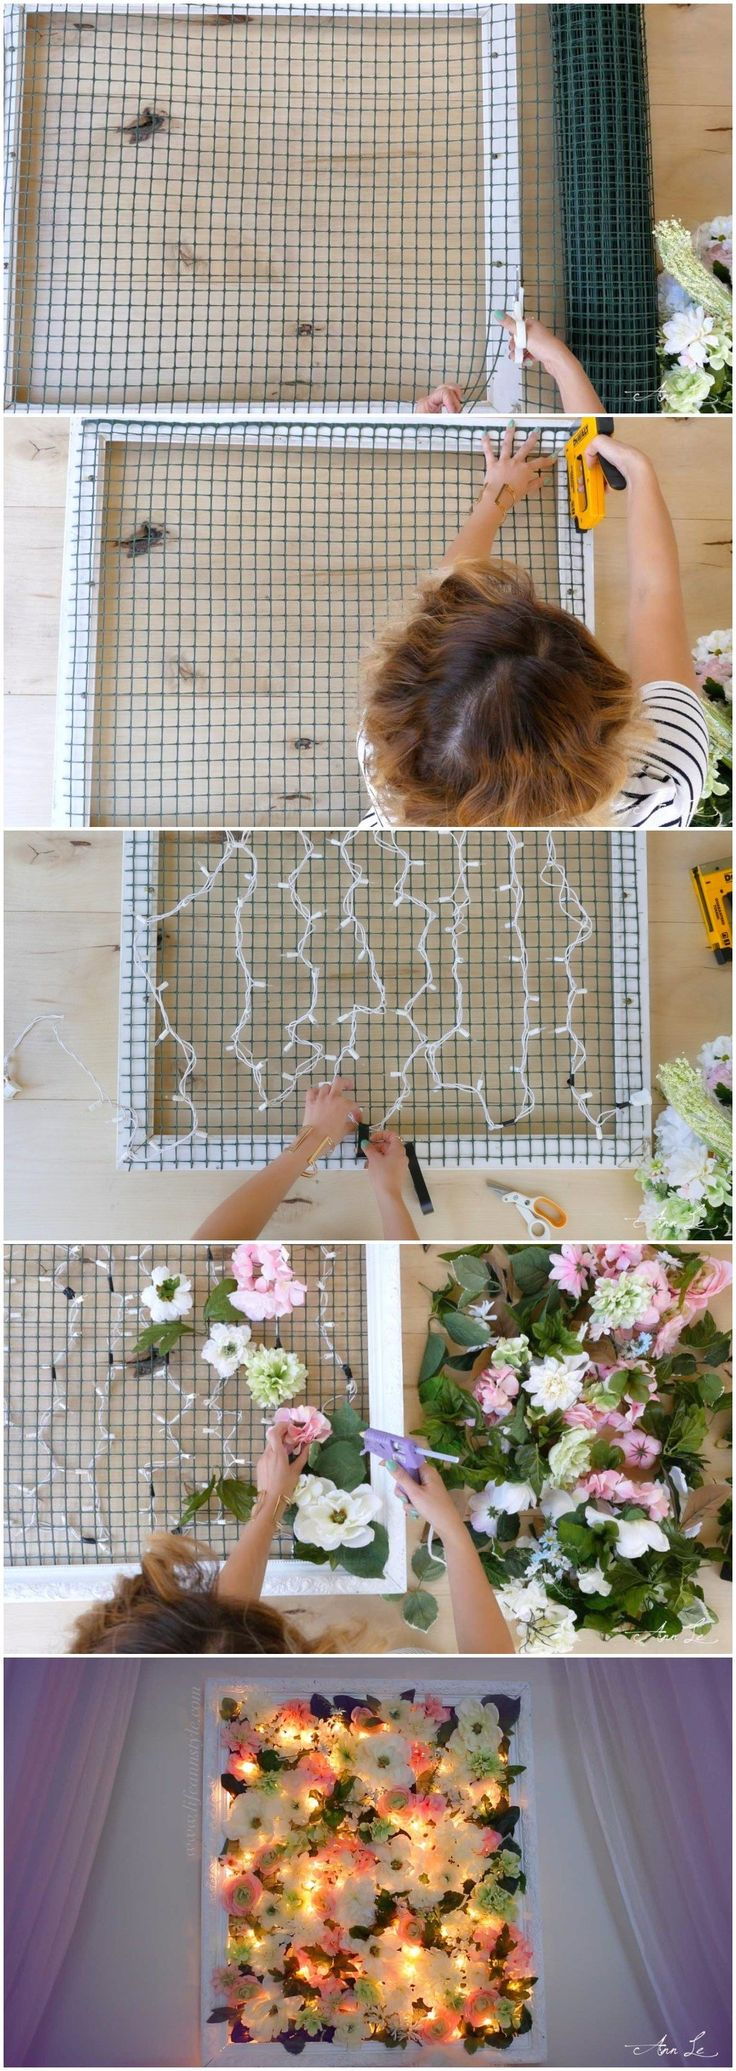 25 best ideas about flower frame on pinterest diy - Decoracion con luces ...